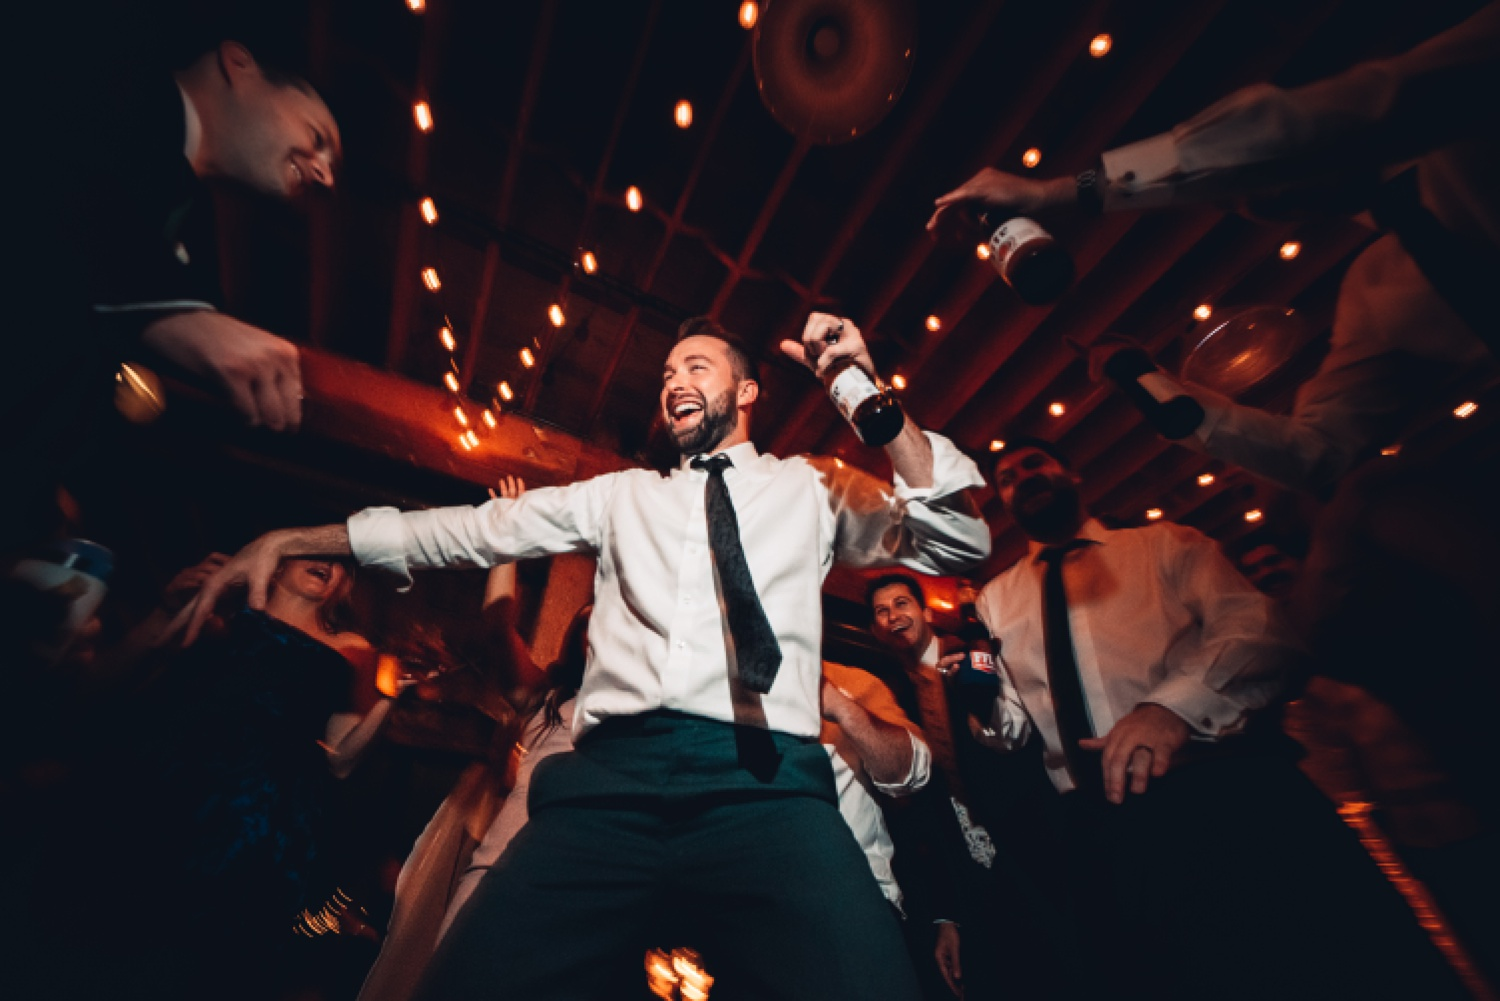 Artifact Events Chicago Wedding - The Adamkovi dance party